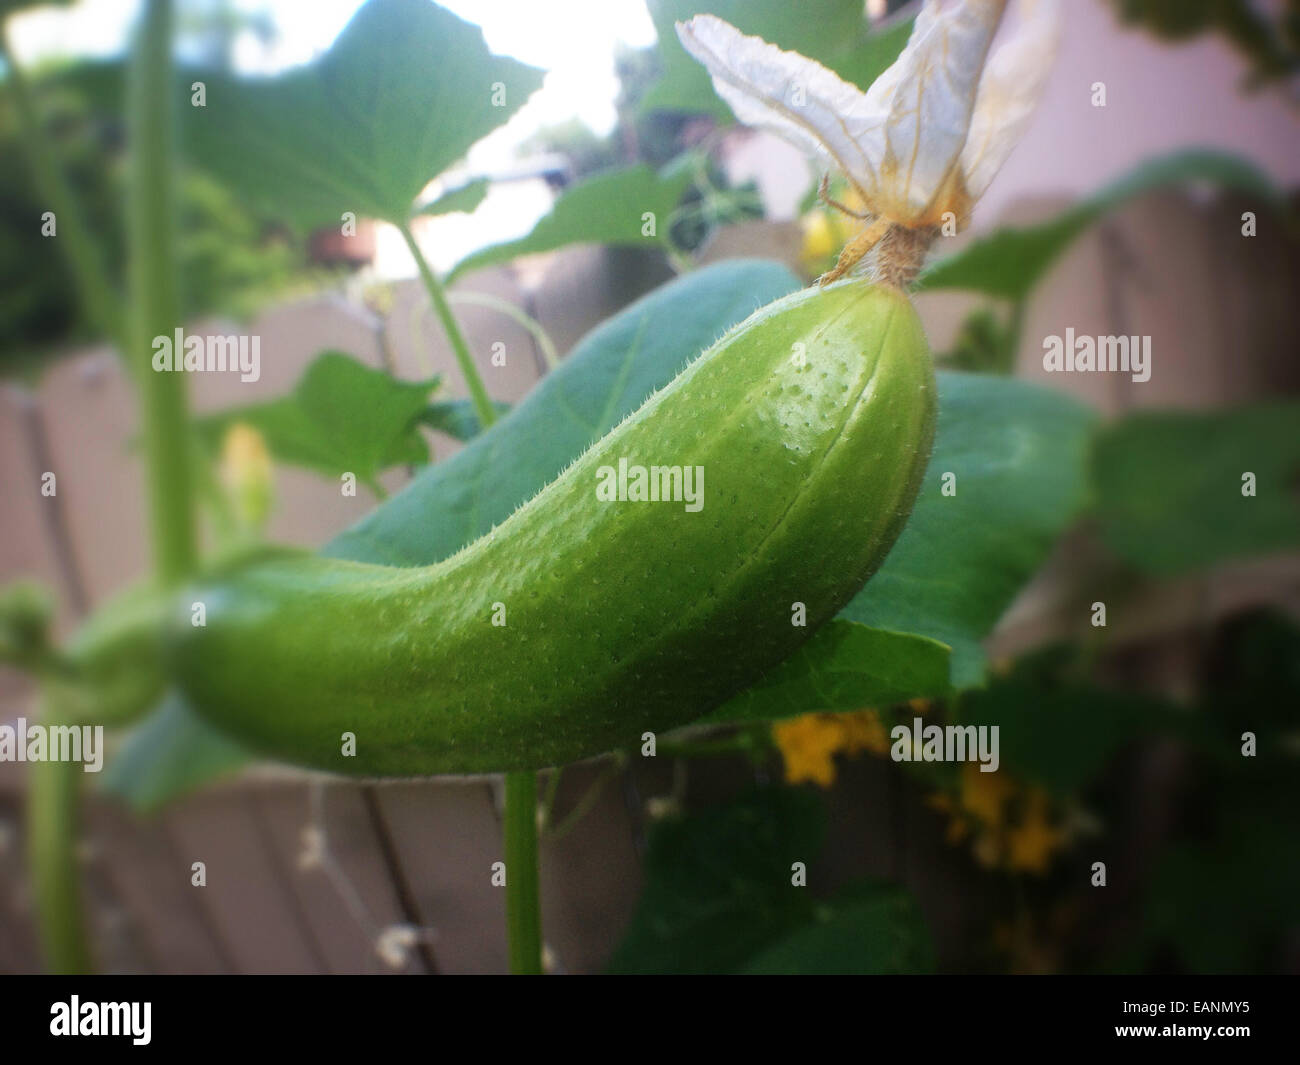 cucumber with blossom on the vine - Stock Image